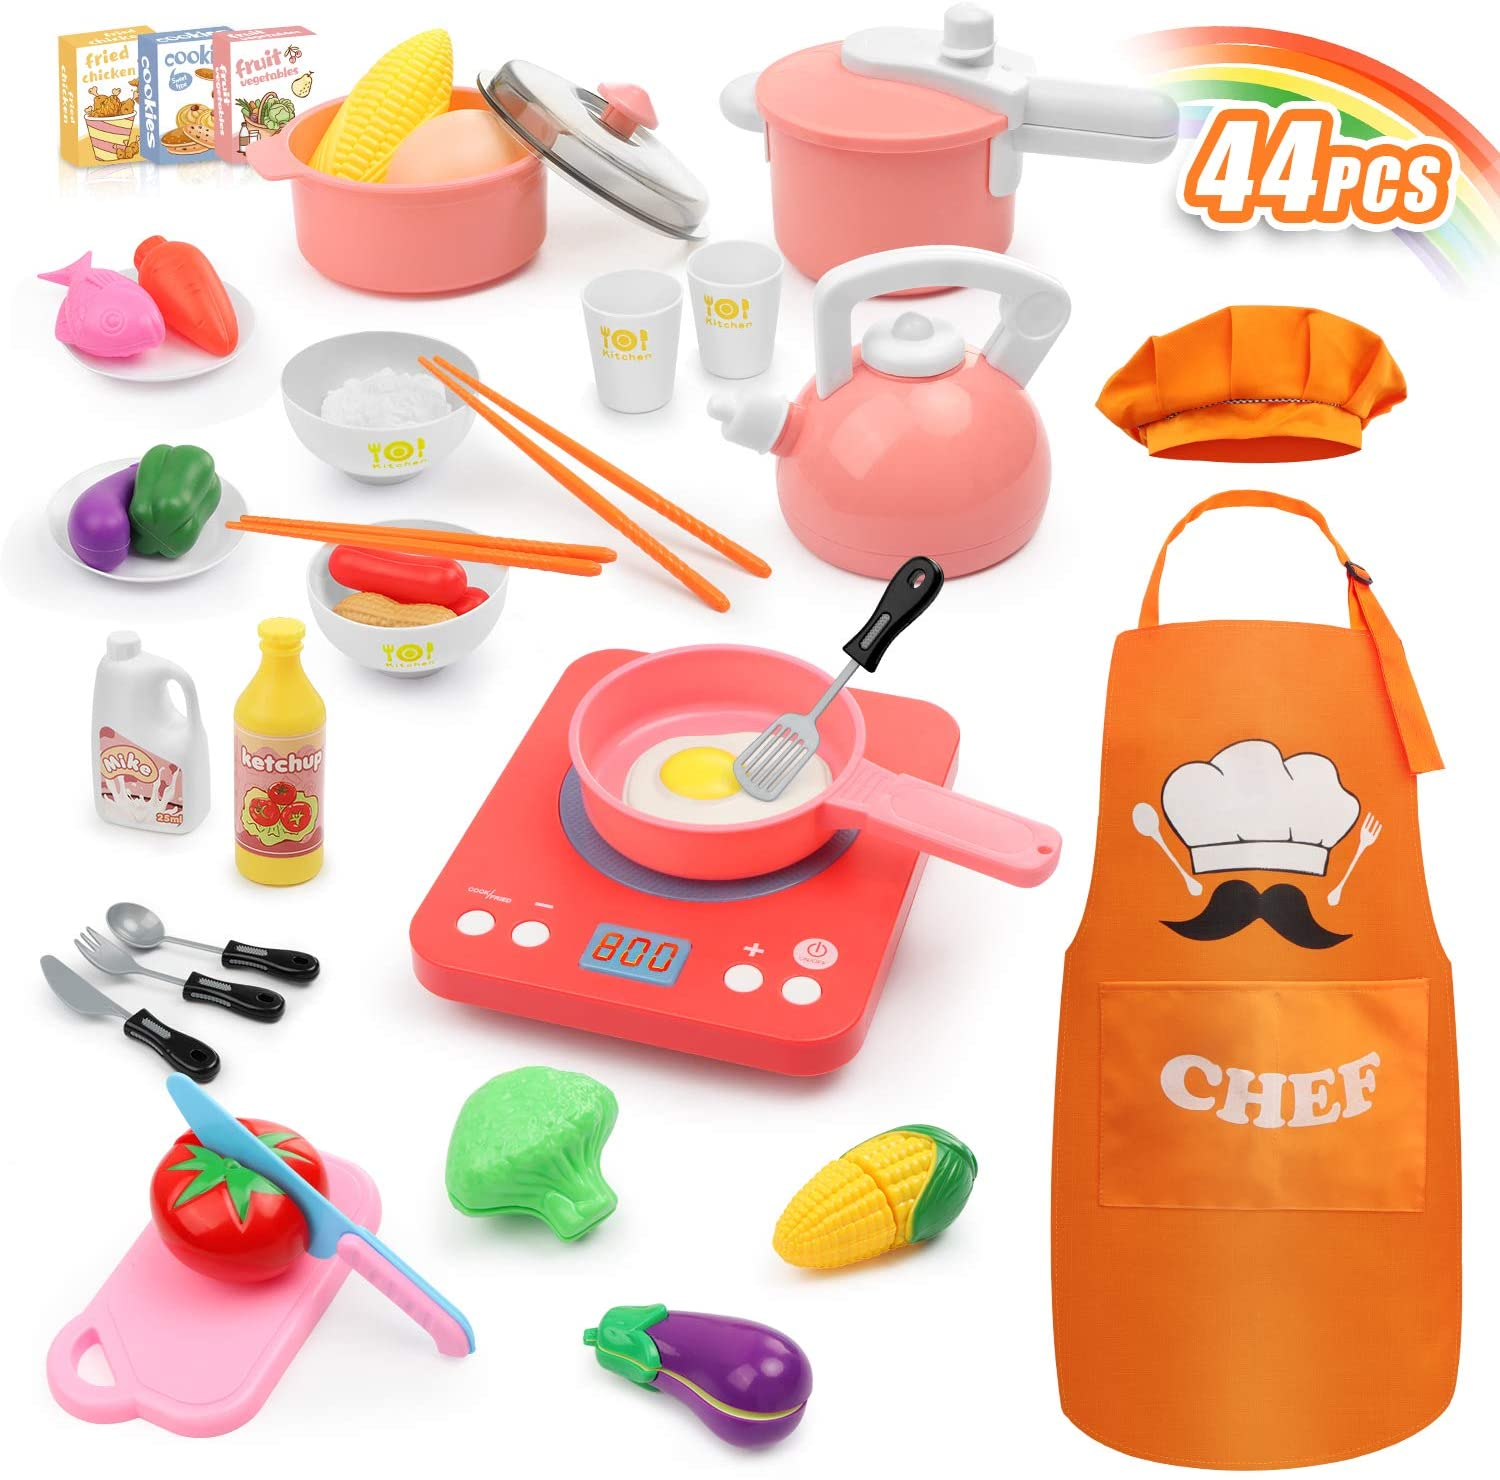 Hapgo Kitchen Pretend Play Toys Set with Induction Cooktop Cookware Pots and Pans Playset, Cooking Utensils, Apron & Chef Hat, Play Food, Cutting Vegetables for Kids Girls Boys Toddlers (Pink)